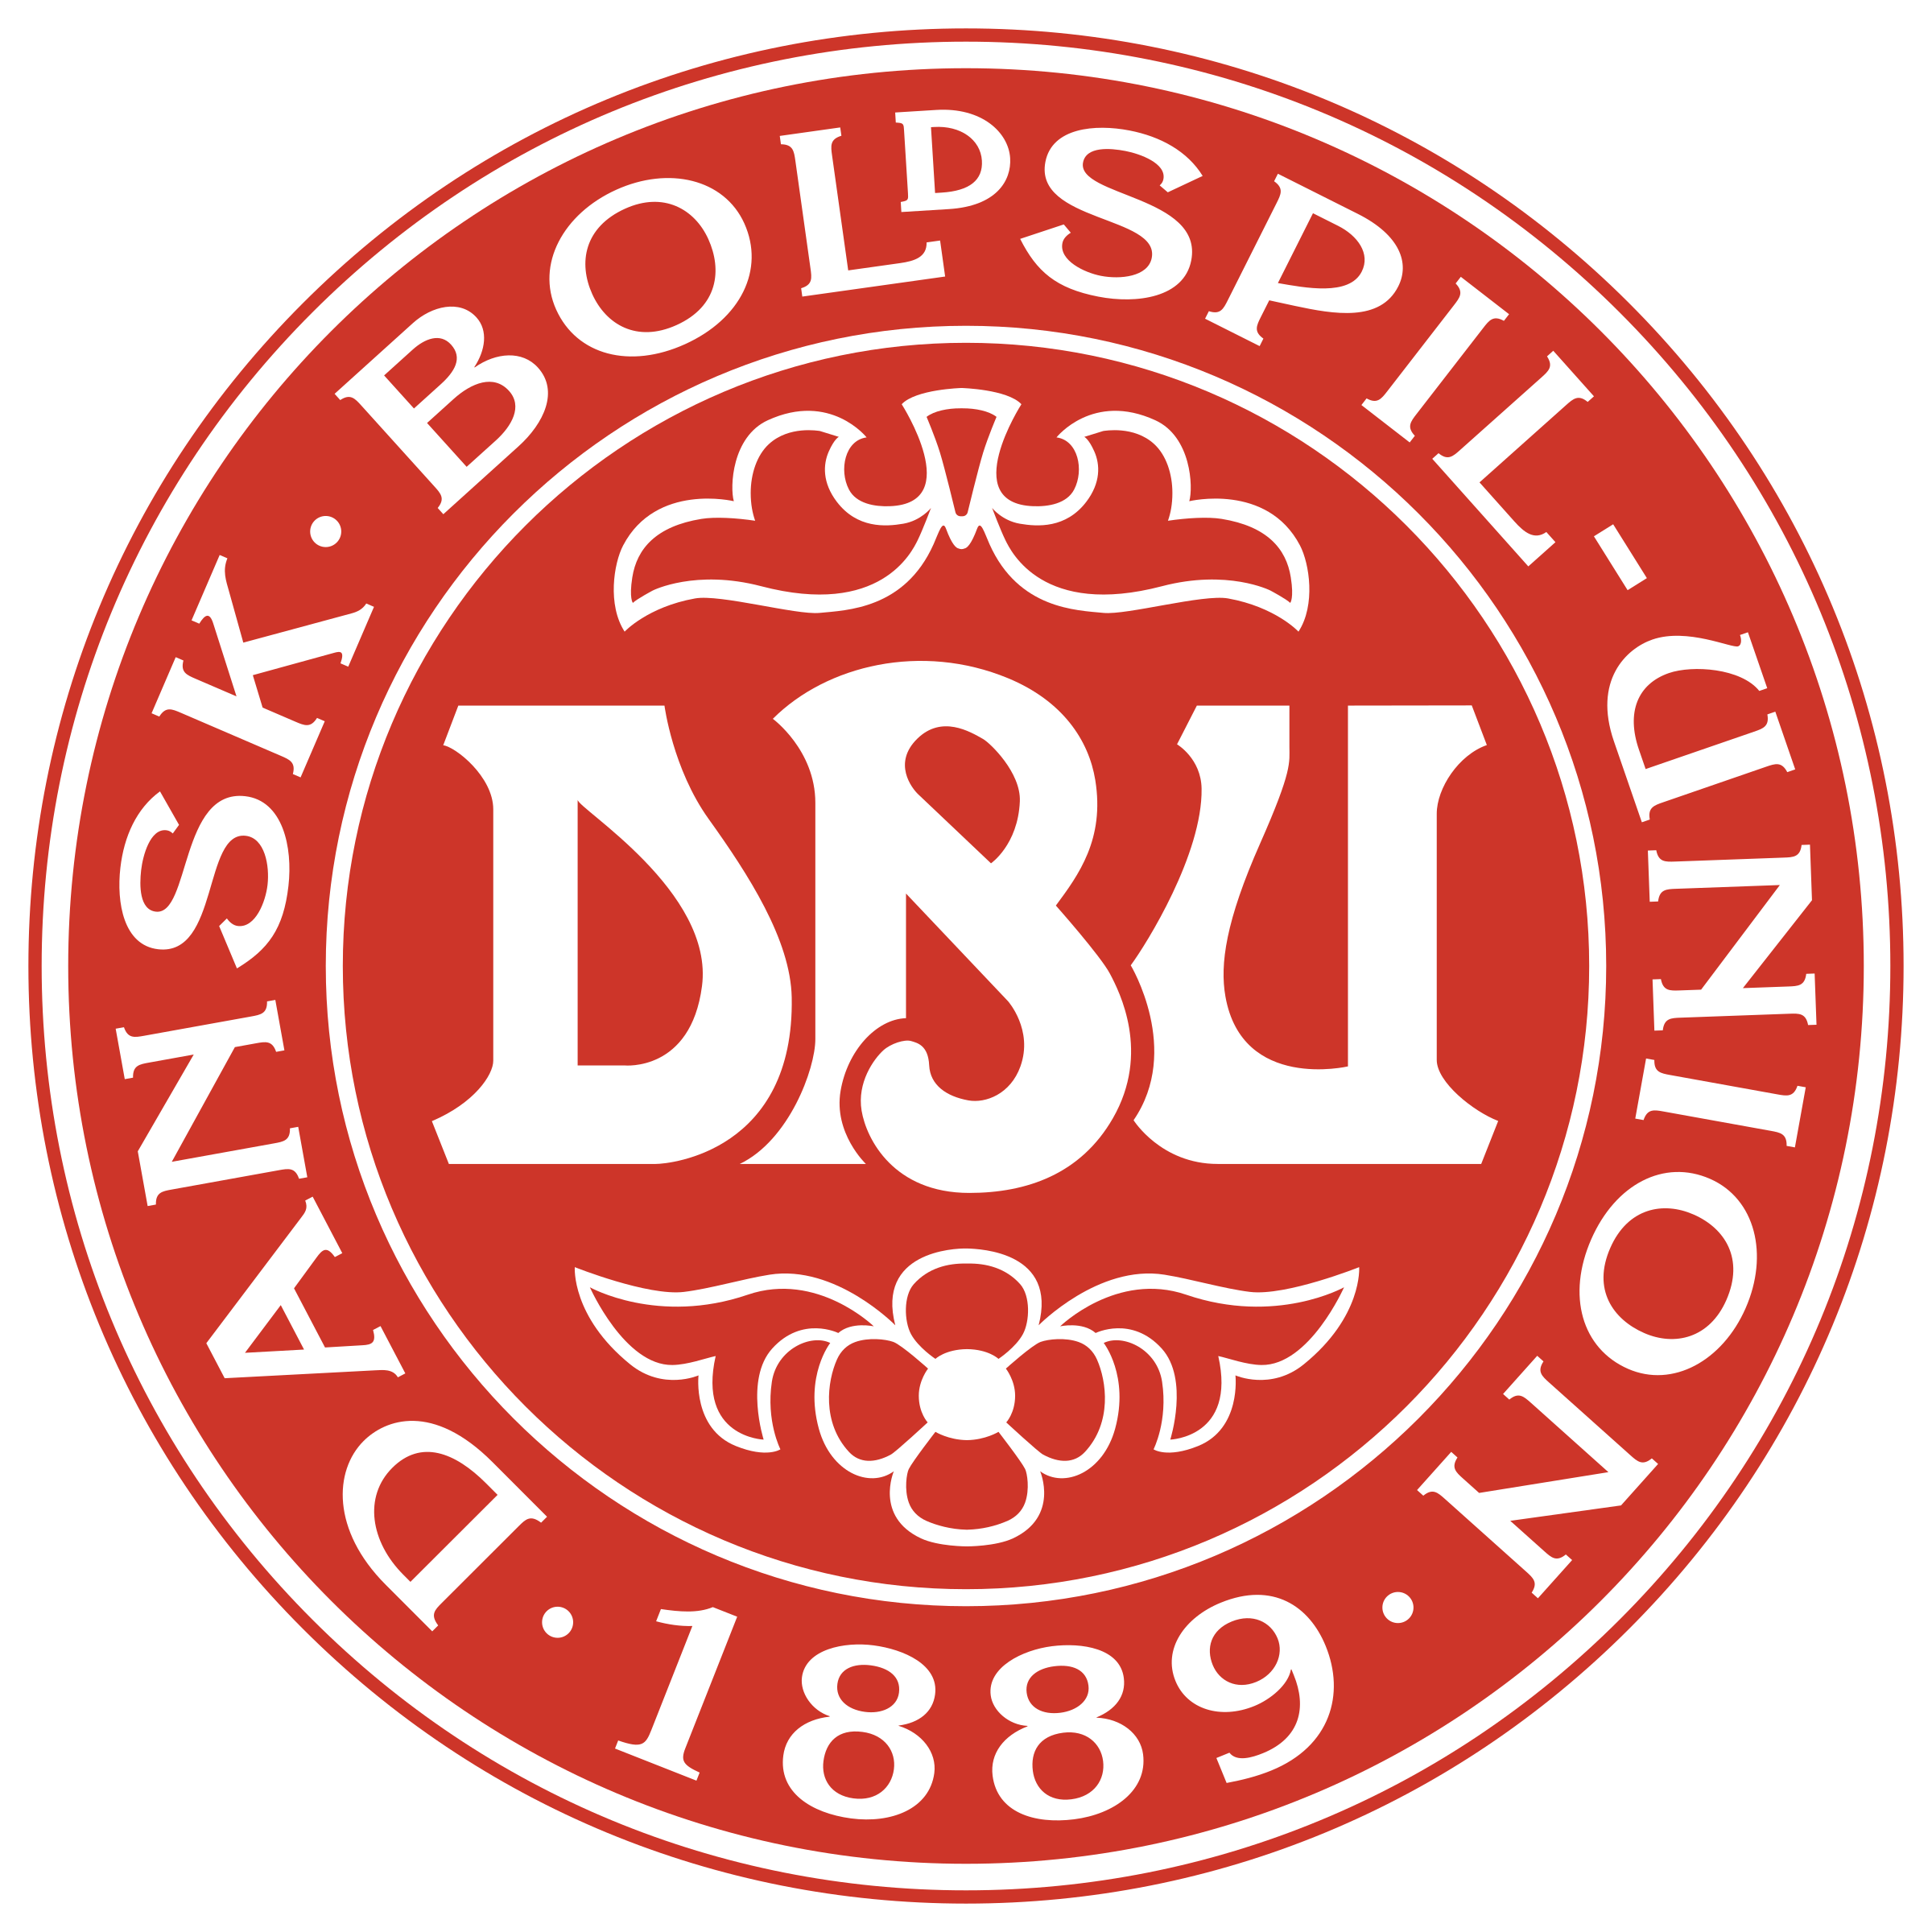 dbu-1-logo-png-transparent